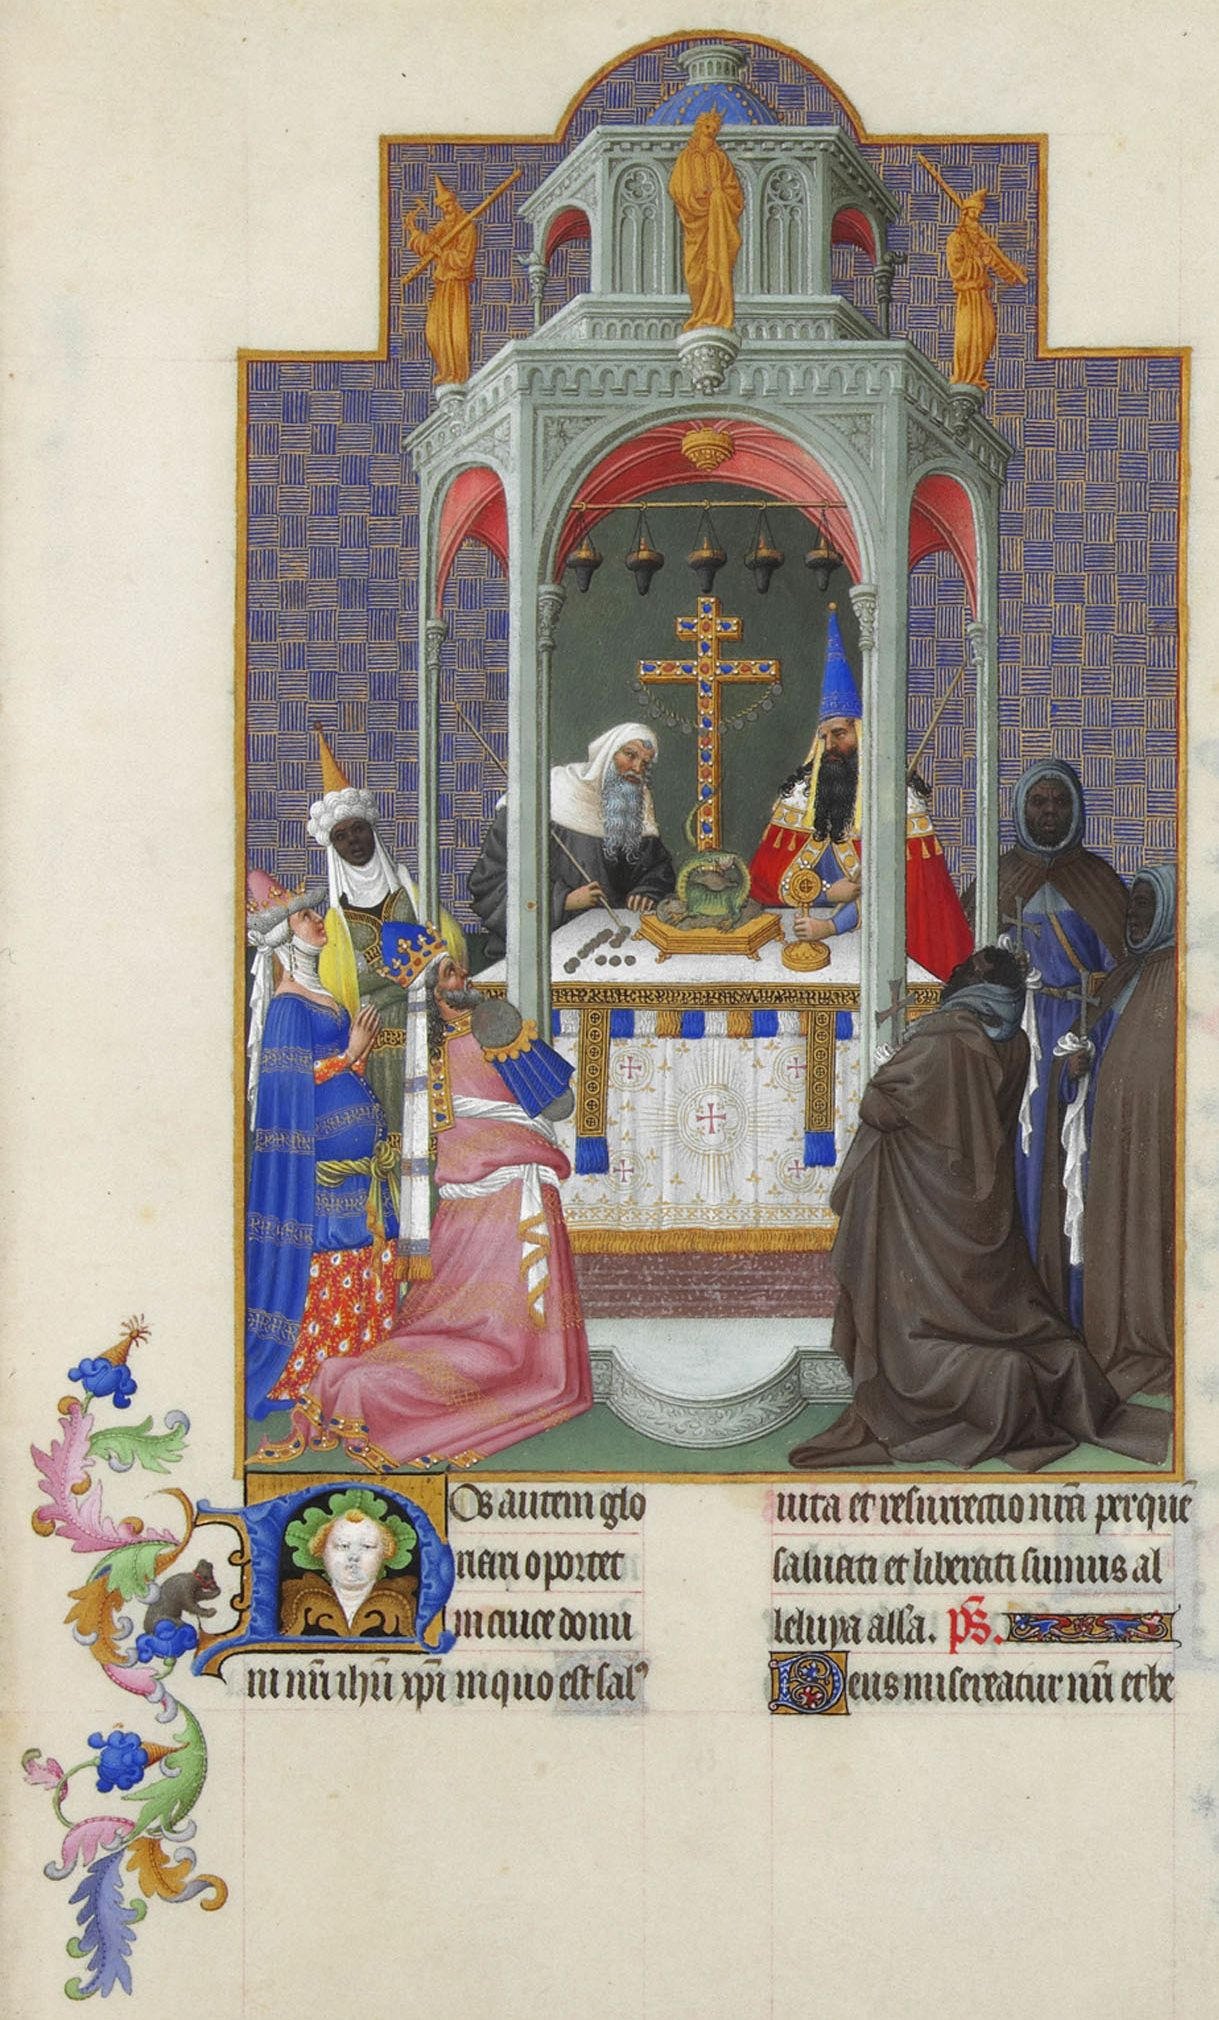 Exaltation of the Cross from the Très Riches Heures du Duc de Berry (Musée Condé, Chantilly)